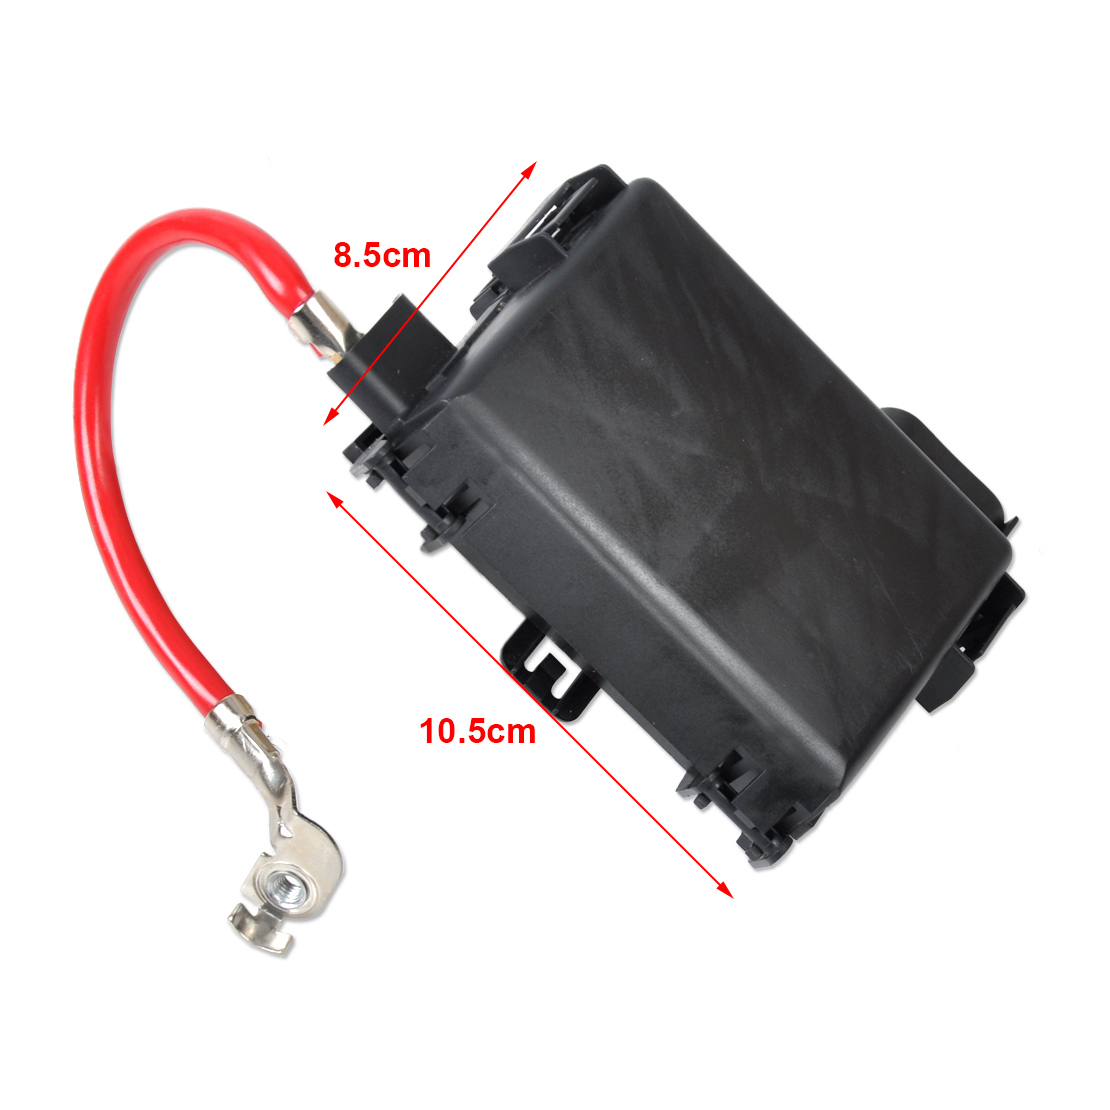 hight resolution of details about fuse box battery terminal for vw golf bora jetta mk4 beetle audi a3 1j0937550a